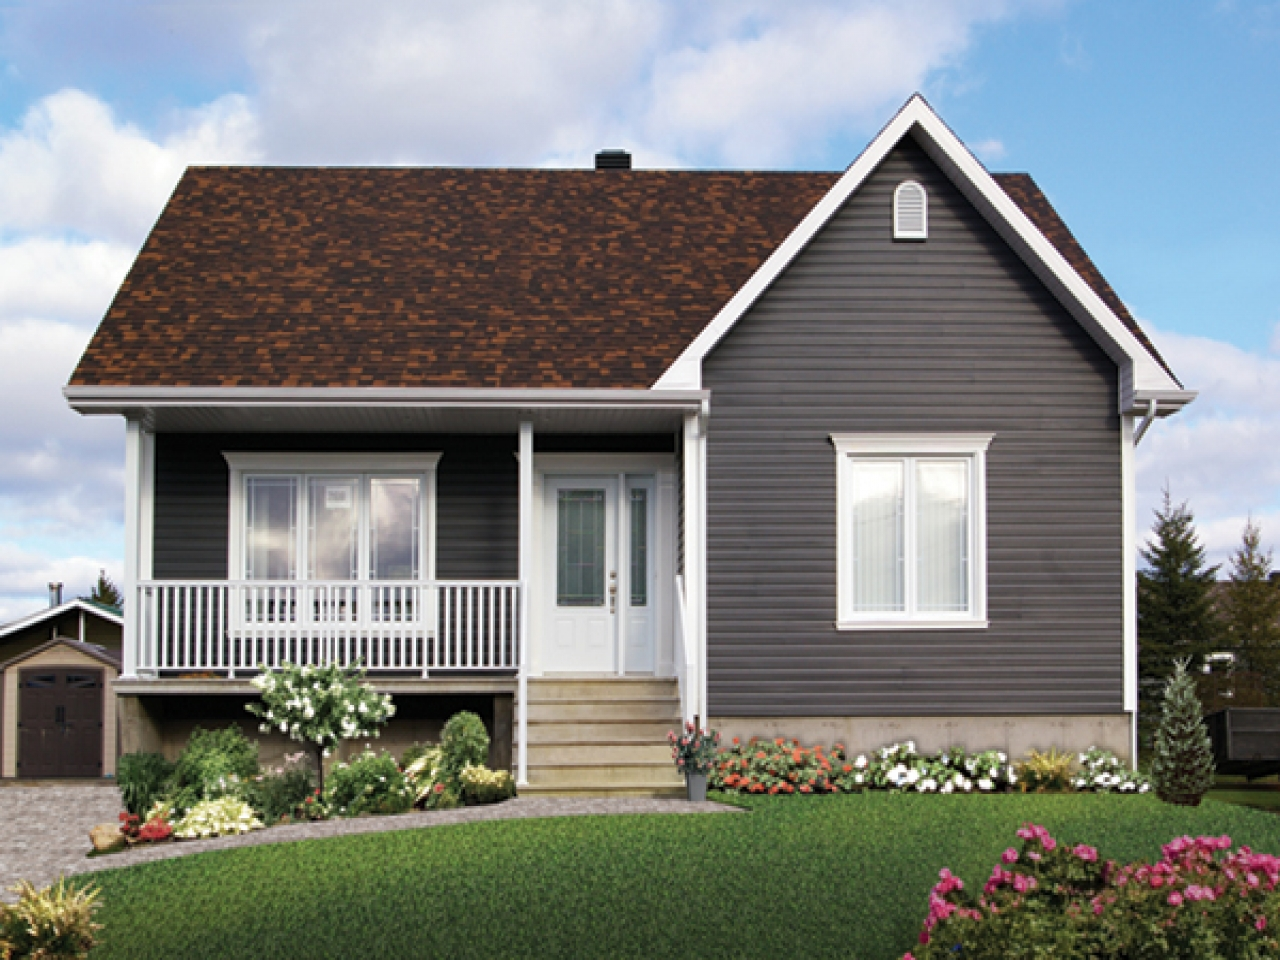 Treecrest ranch bungalow home plan 032d 0726 house plans for California ranch house plans